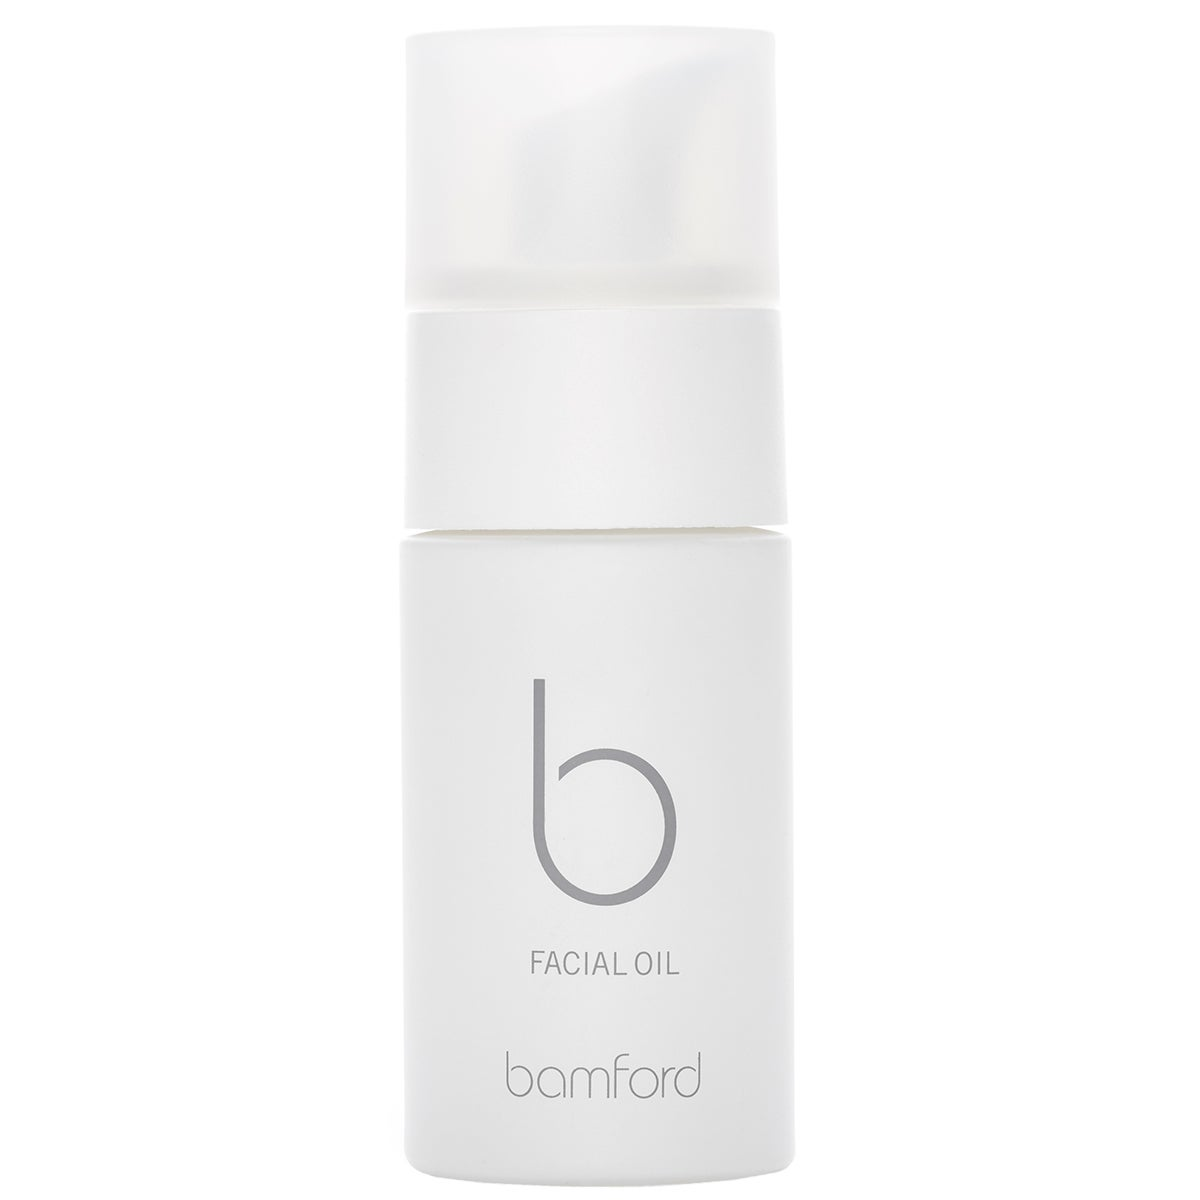 Bamford Facial Oil